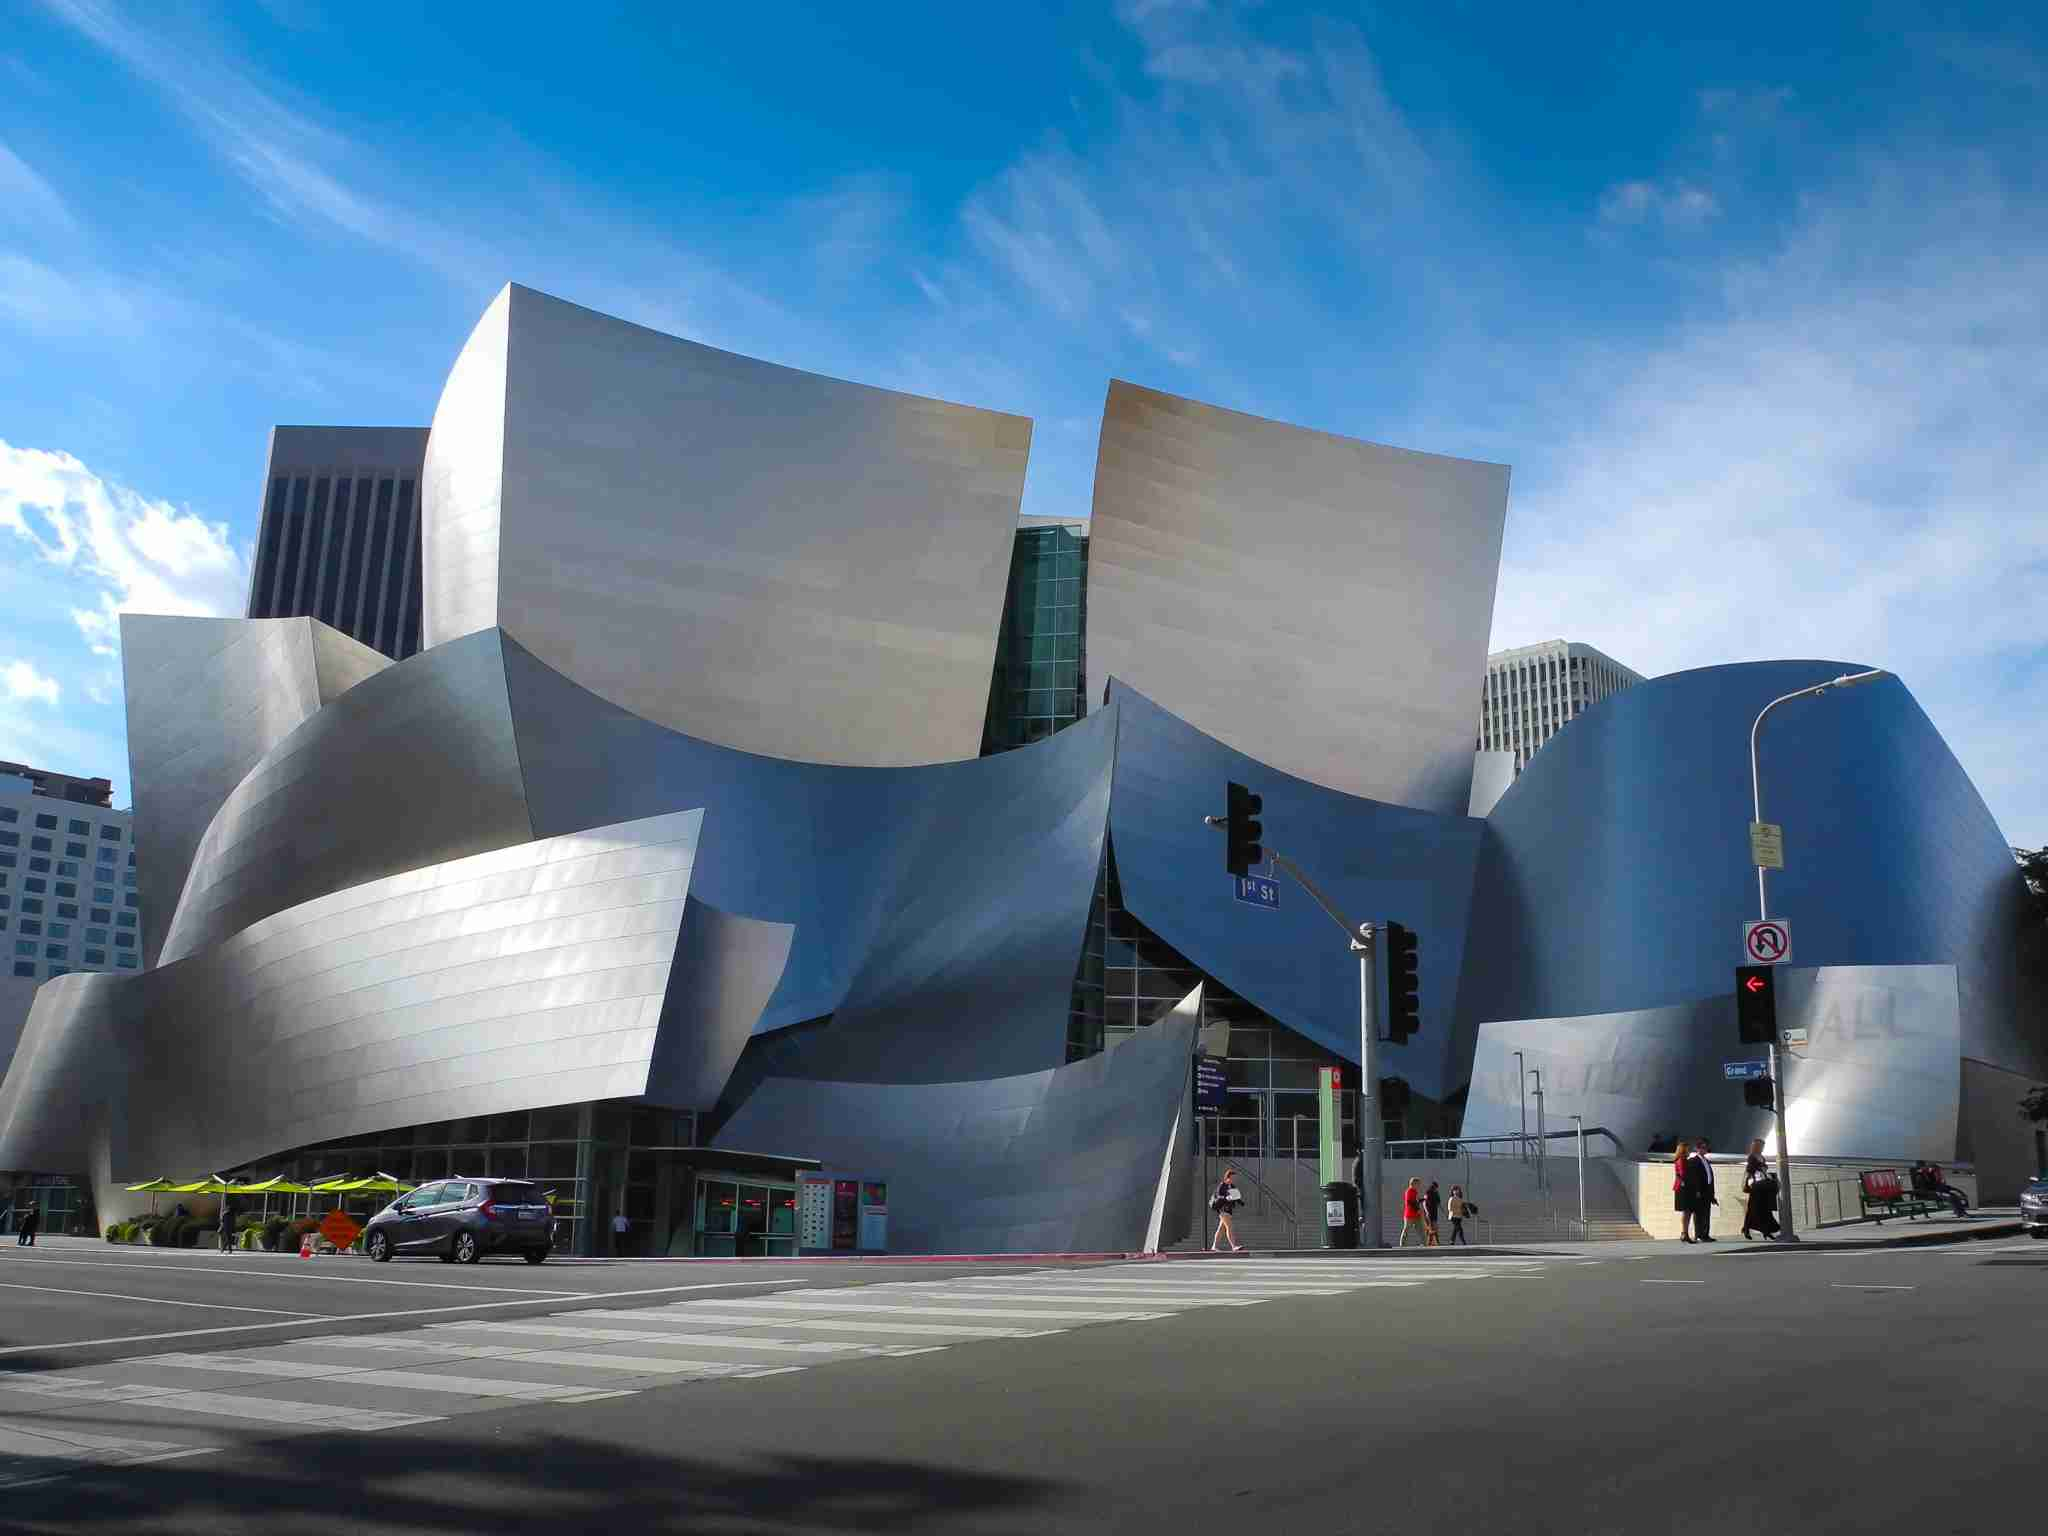 Walt Disney Concert Hall is impressive in photos but even more so in real life. (photo credit: sharadraval)